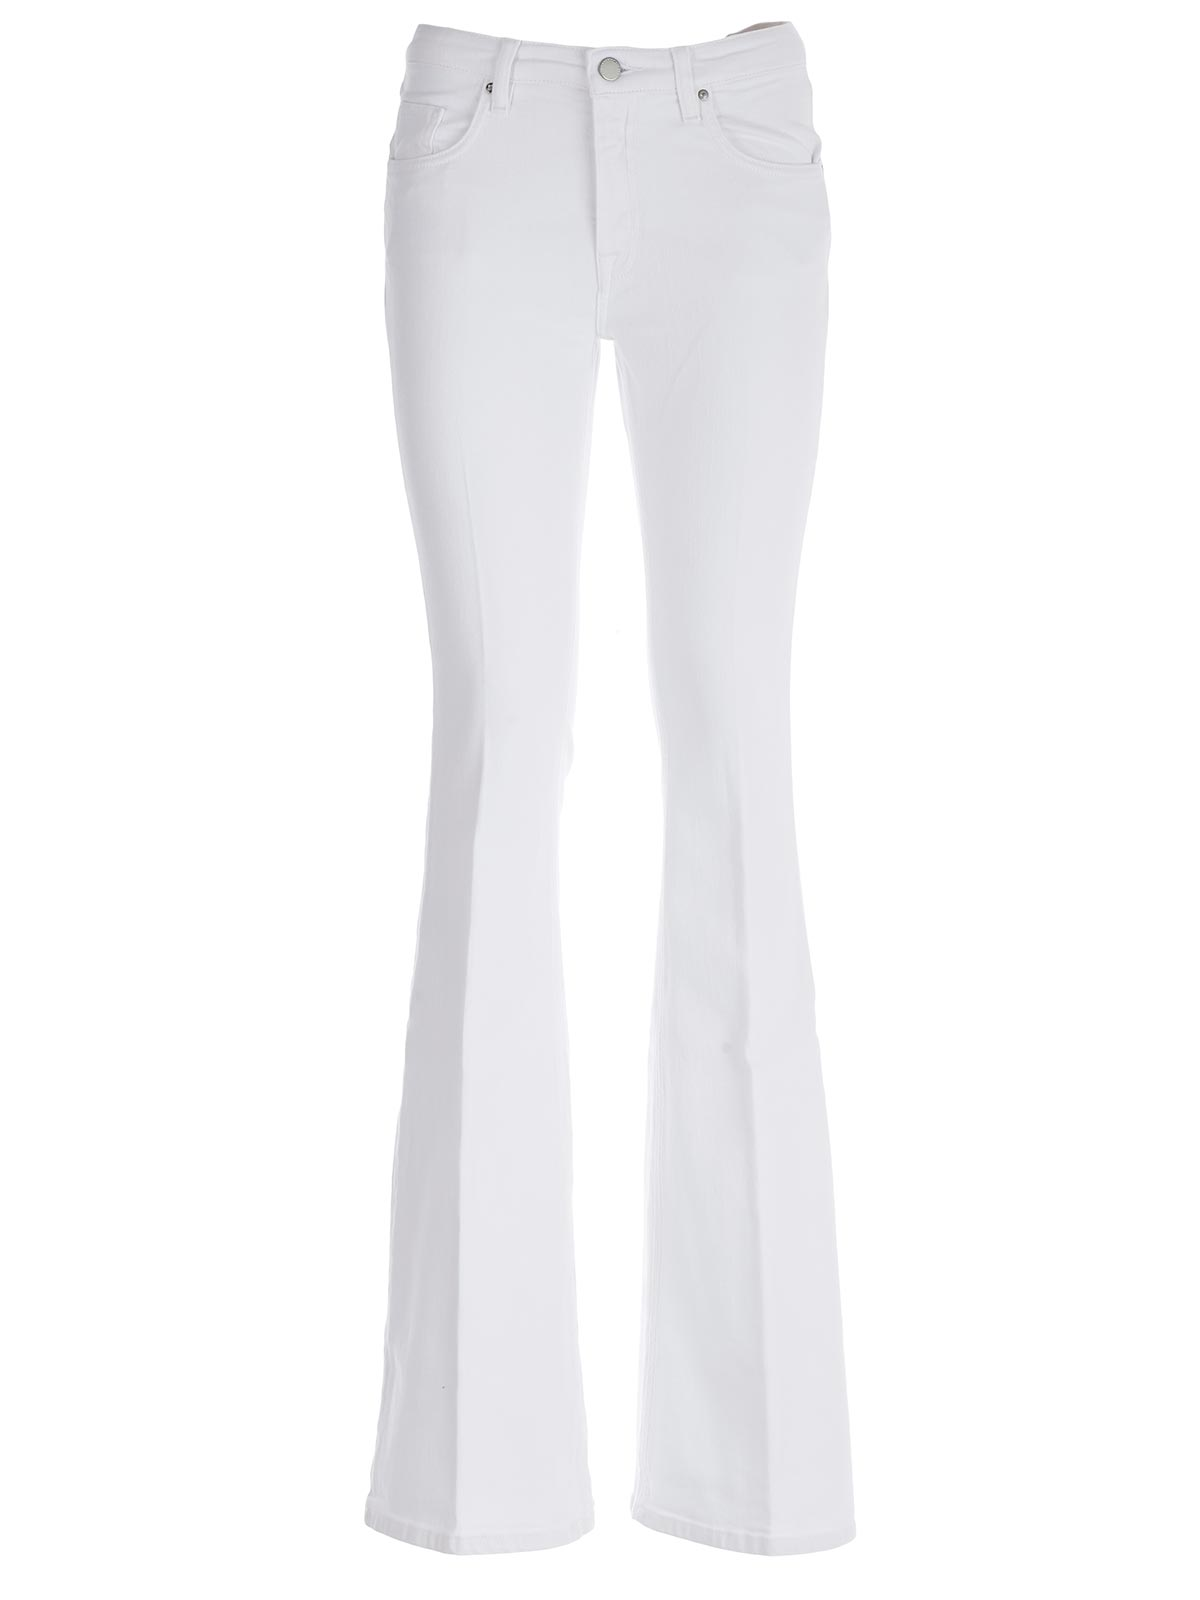 Picture of Victoria, Victoria Beckham Jeans